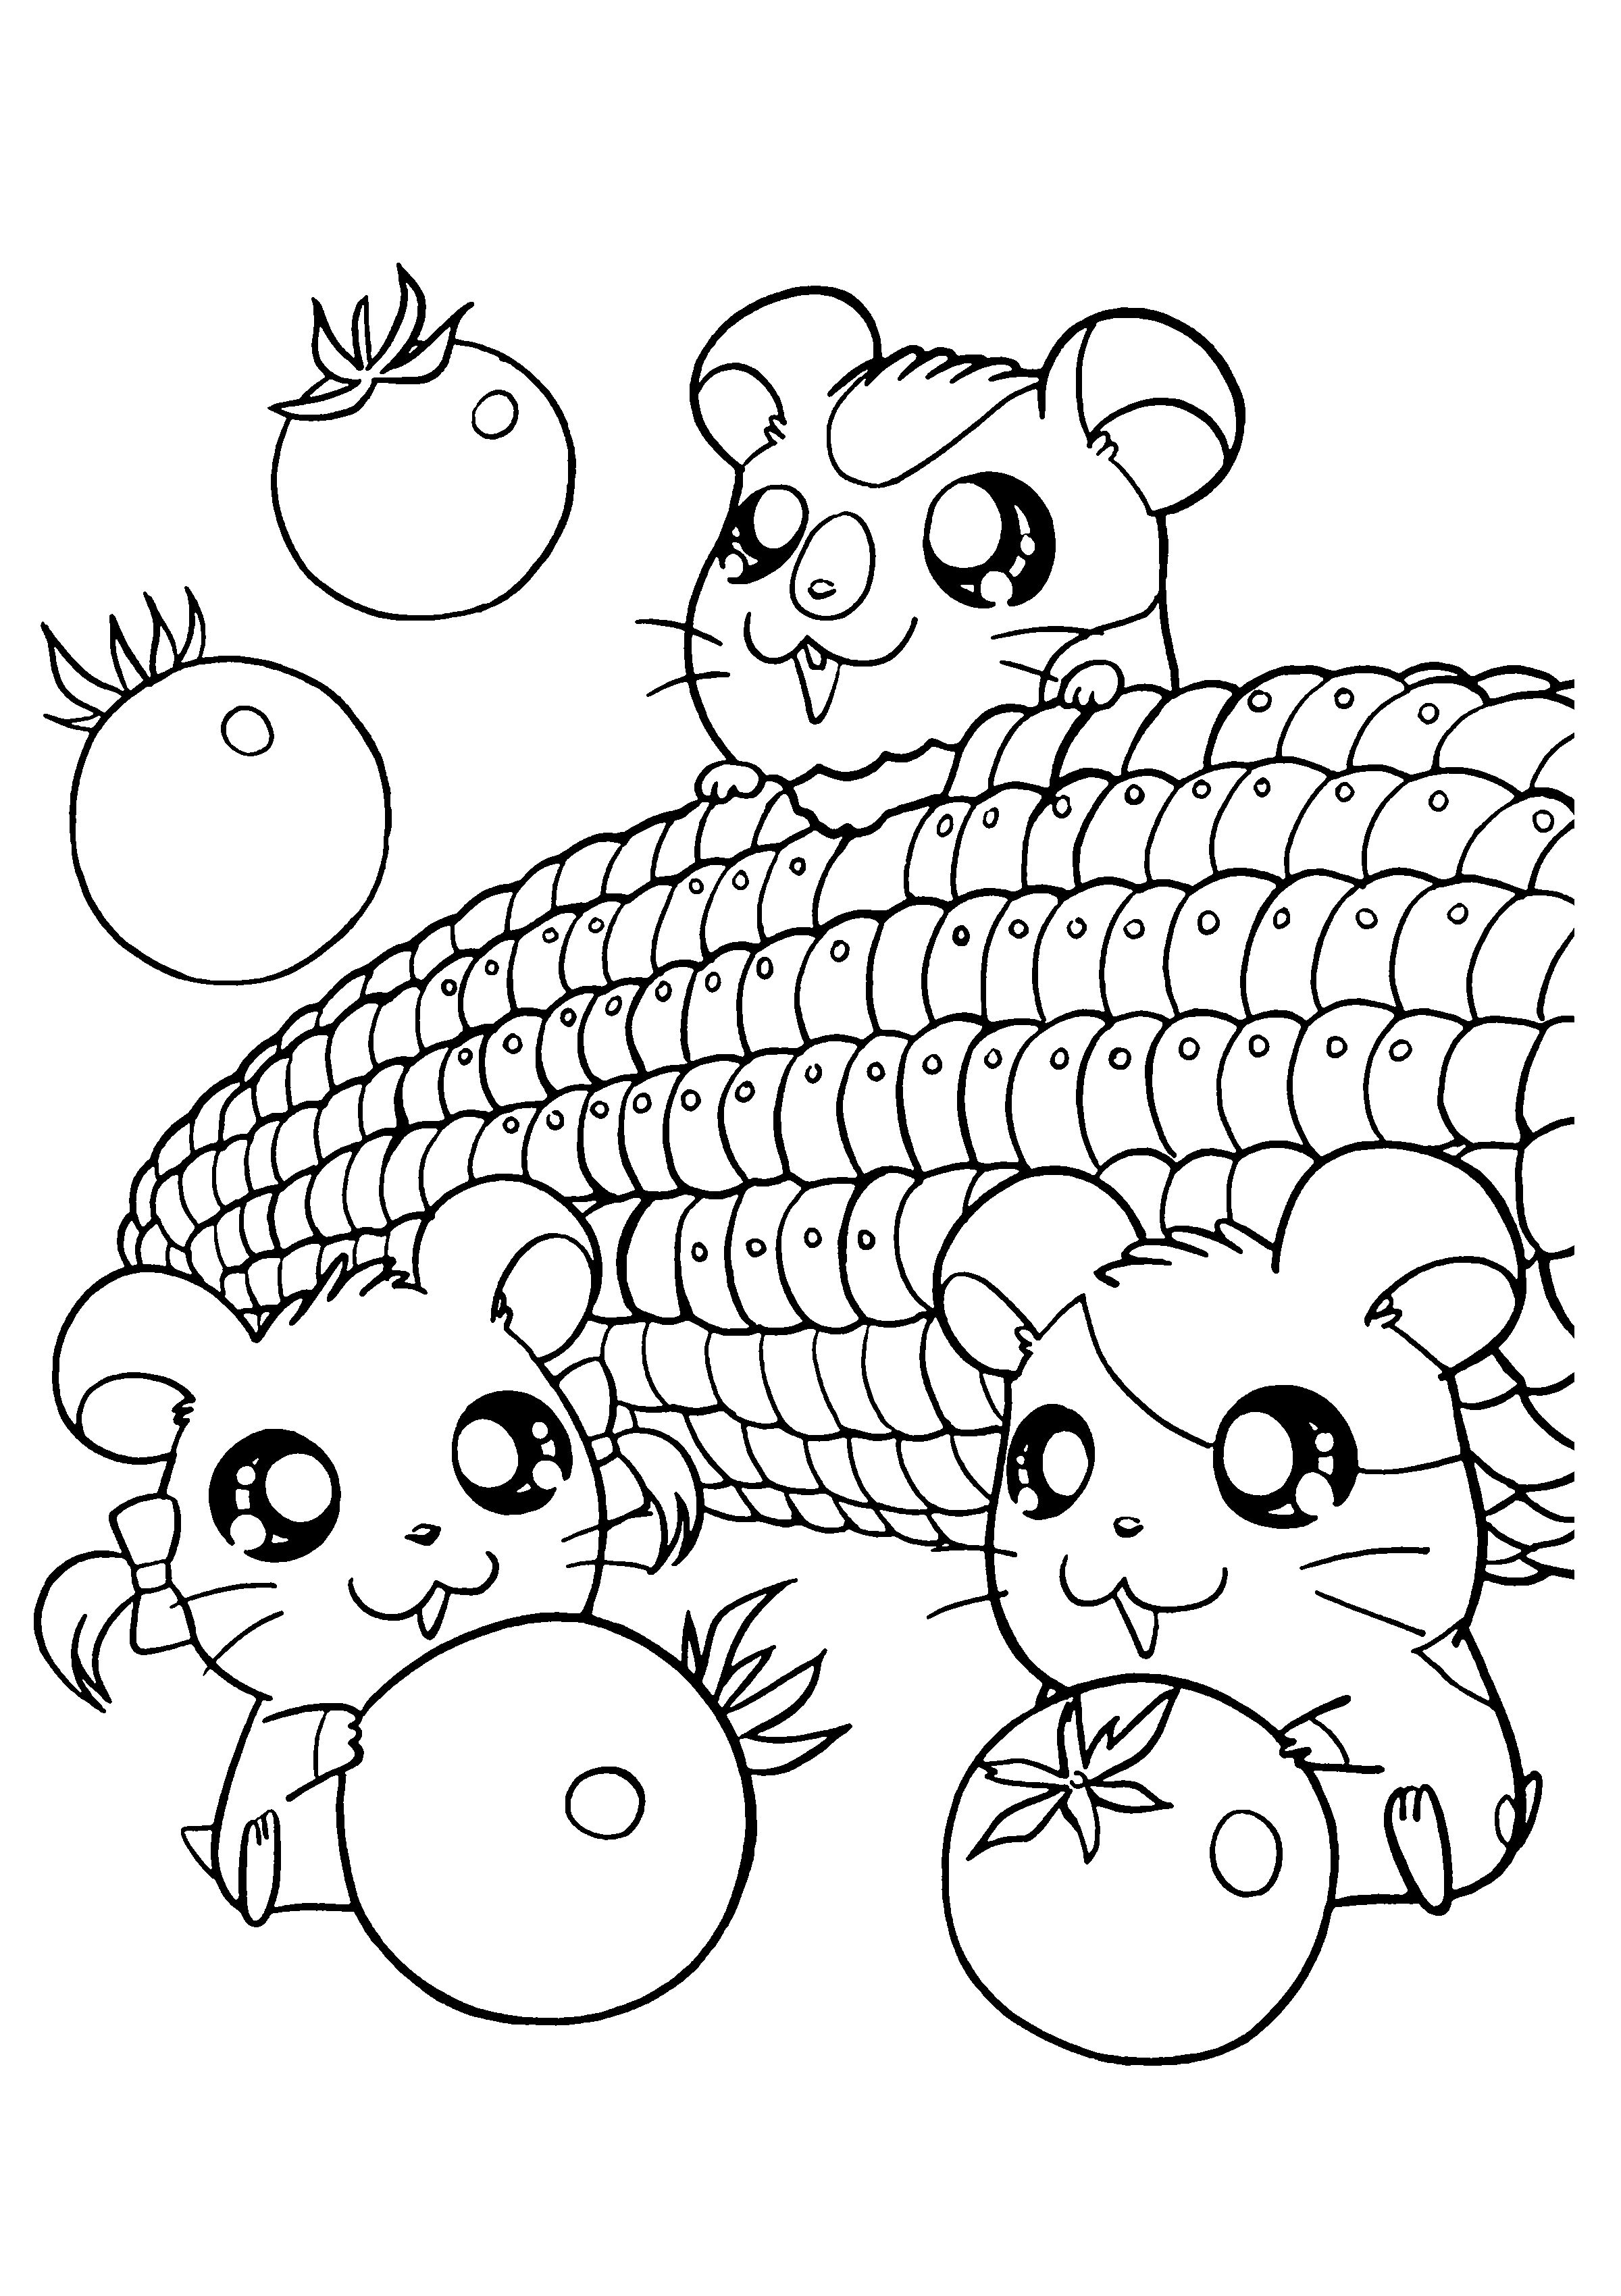 Kawaii Food With Faces Coloring Pages Luxury Kawaii Coloring Pages Coloringsuite Of Kawaii Hello Kitty Colouring Pages Cat Coloring Book Animal Coloring Books